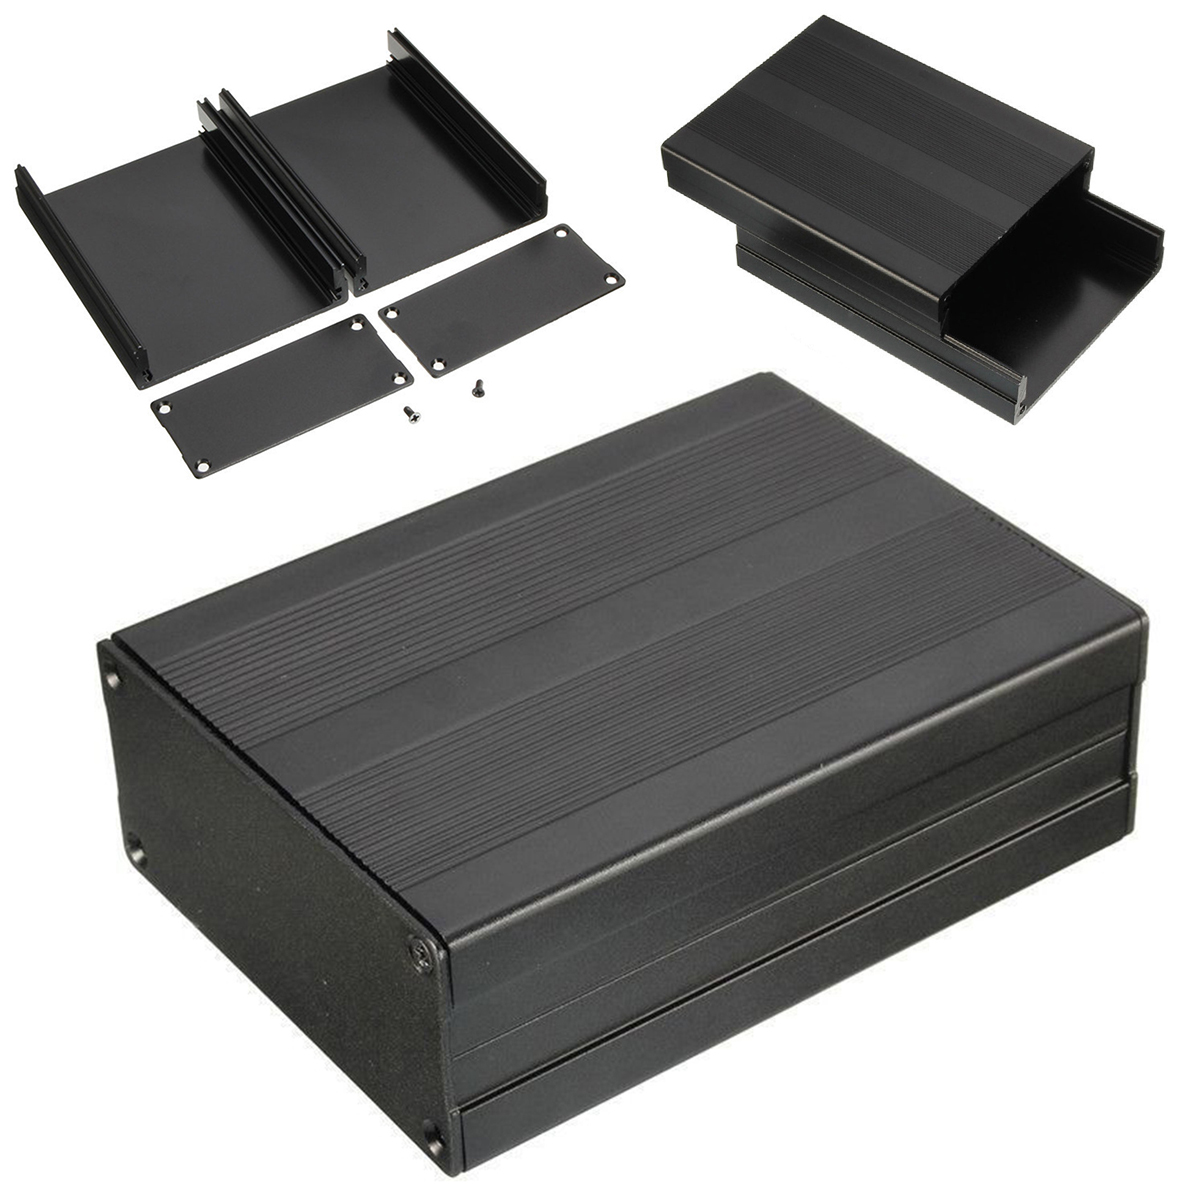 Black Extruded Aluminum Enclosures PCB Instrument Electronic Project Box Case 100x76x35mm electronic project box 44 5 h x482 w x200 l mm extruded aluminum enclosures black high quality and cheap cost aluminum case